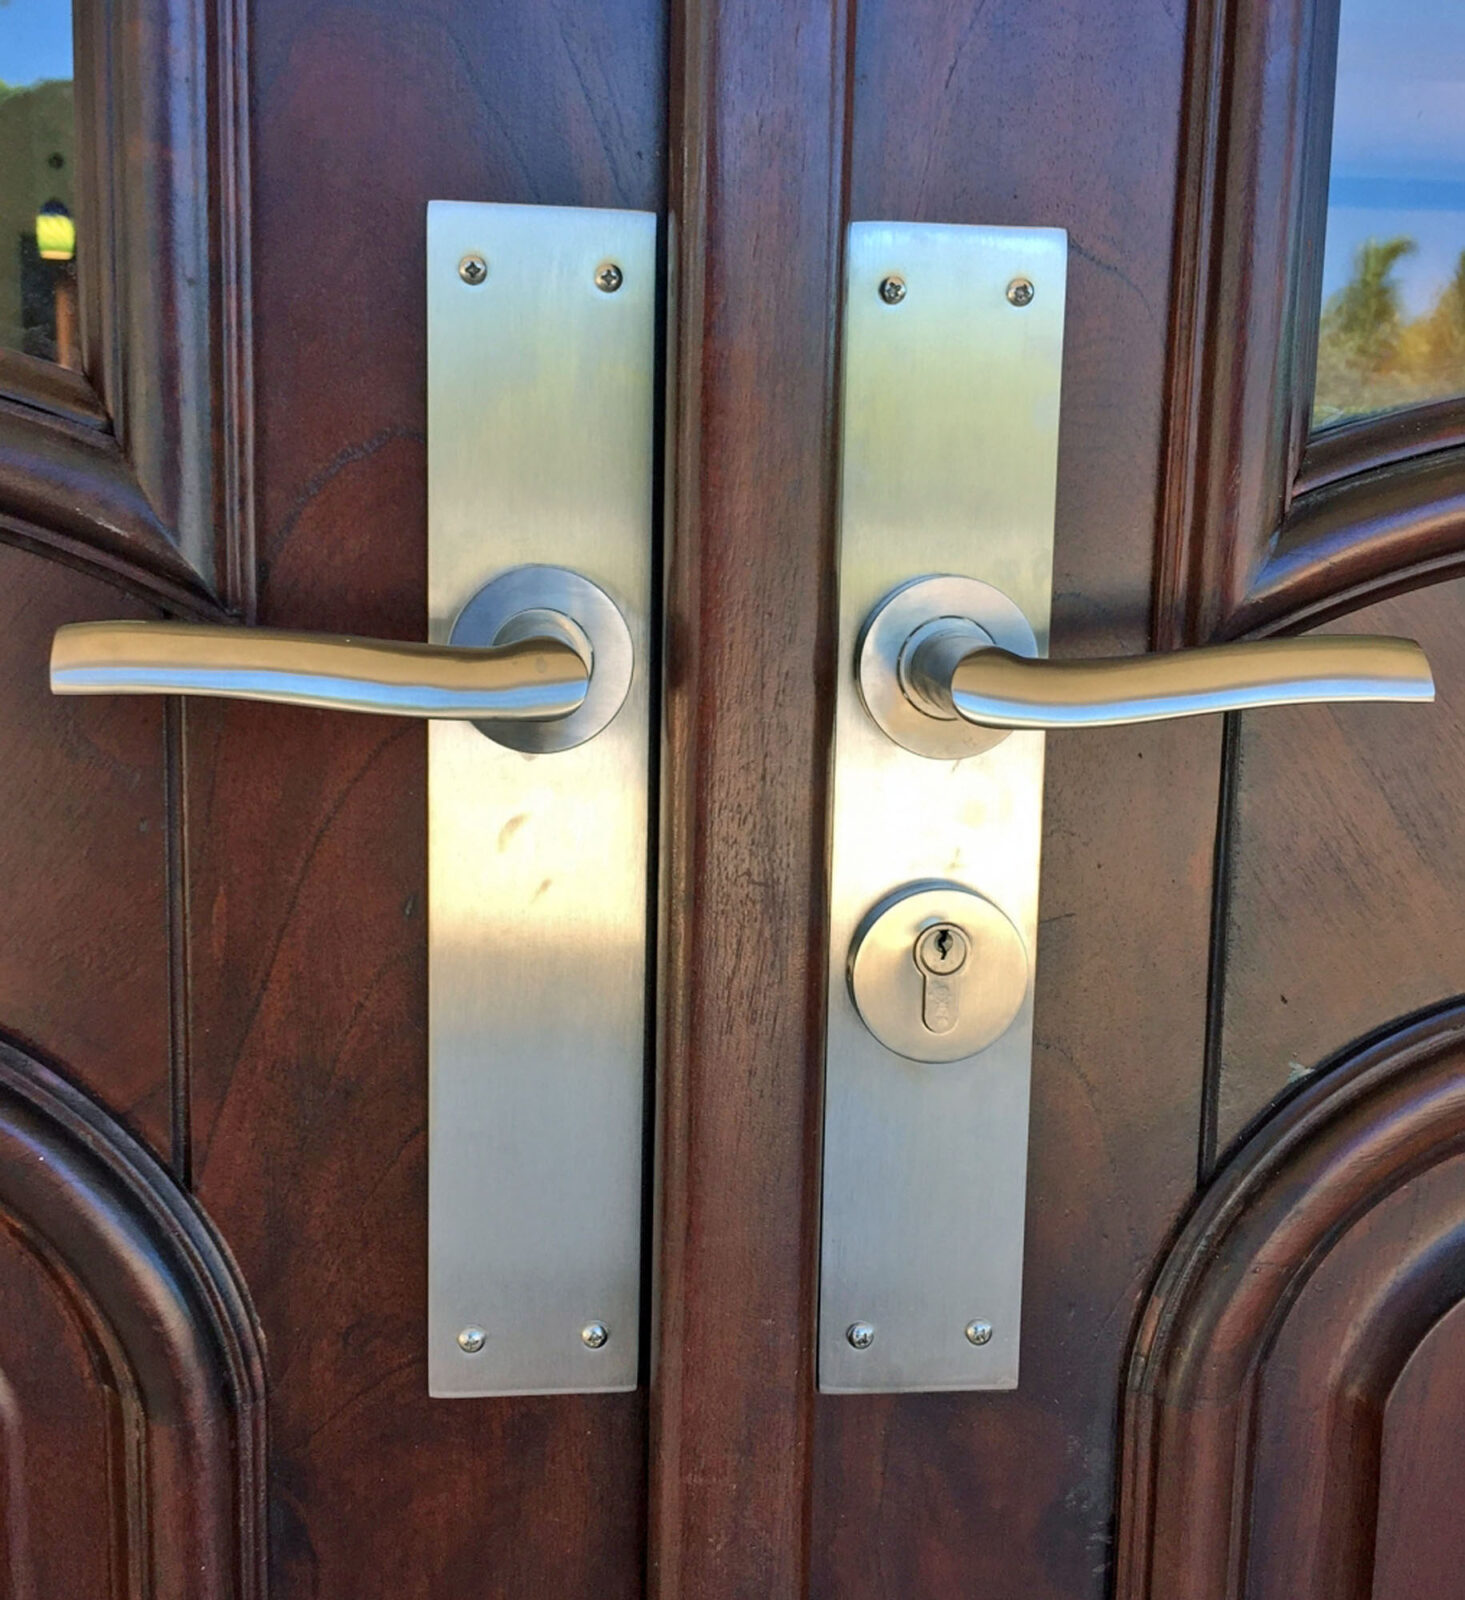 STAINLESS STEEL KEY COLONY HANDLES.